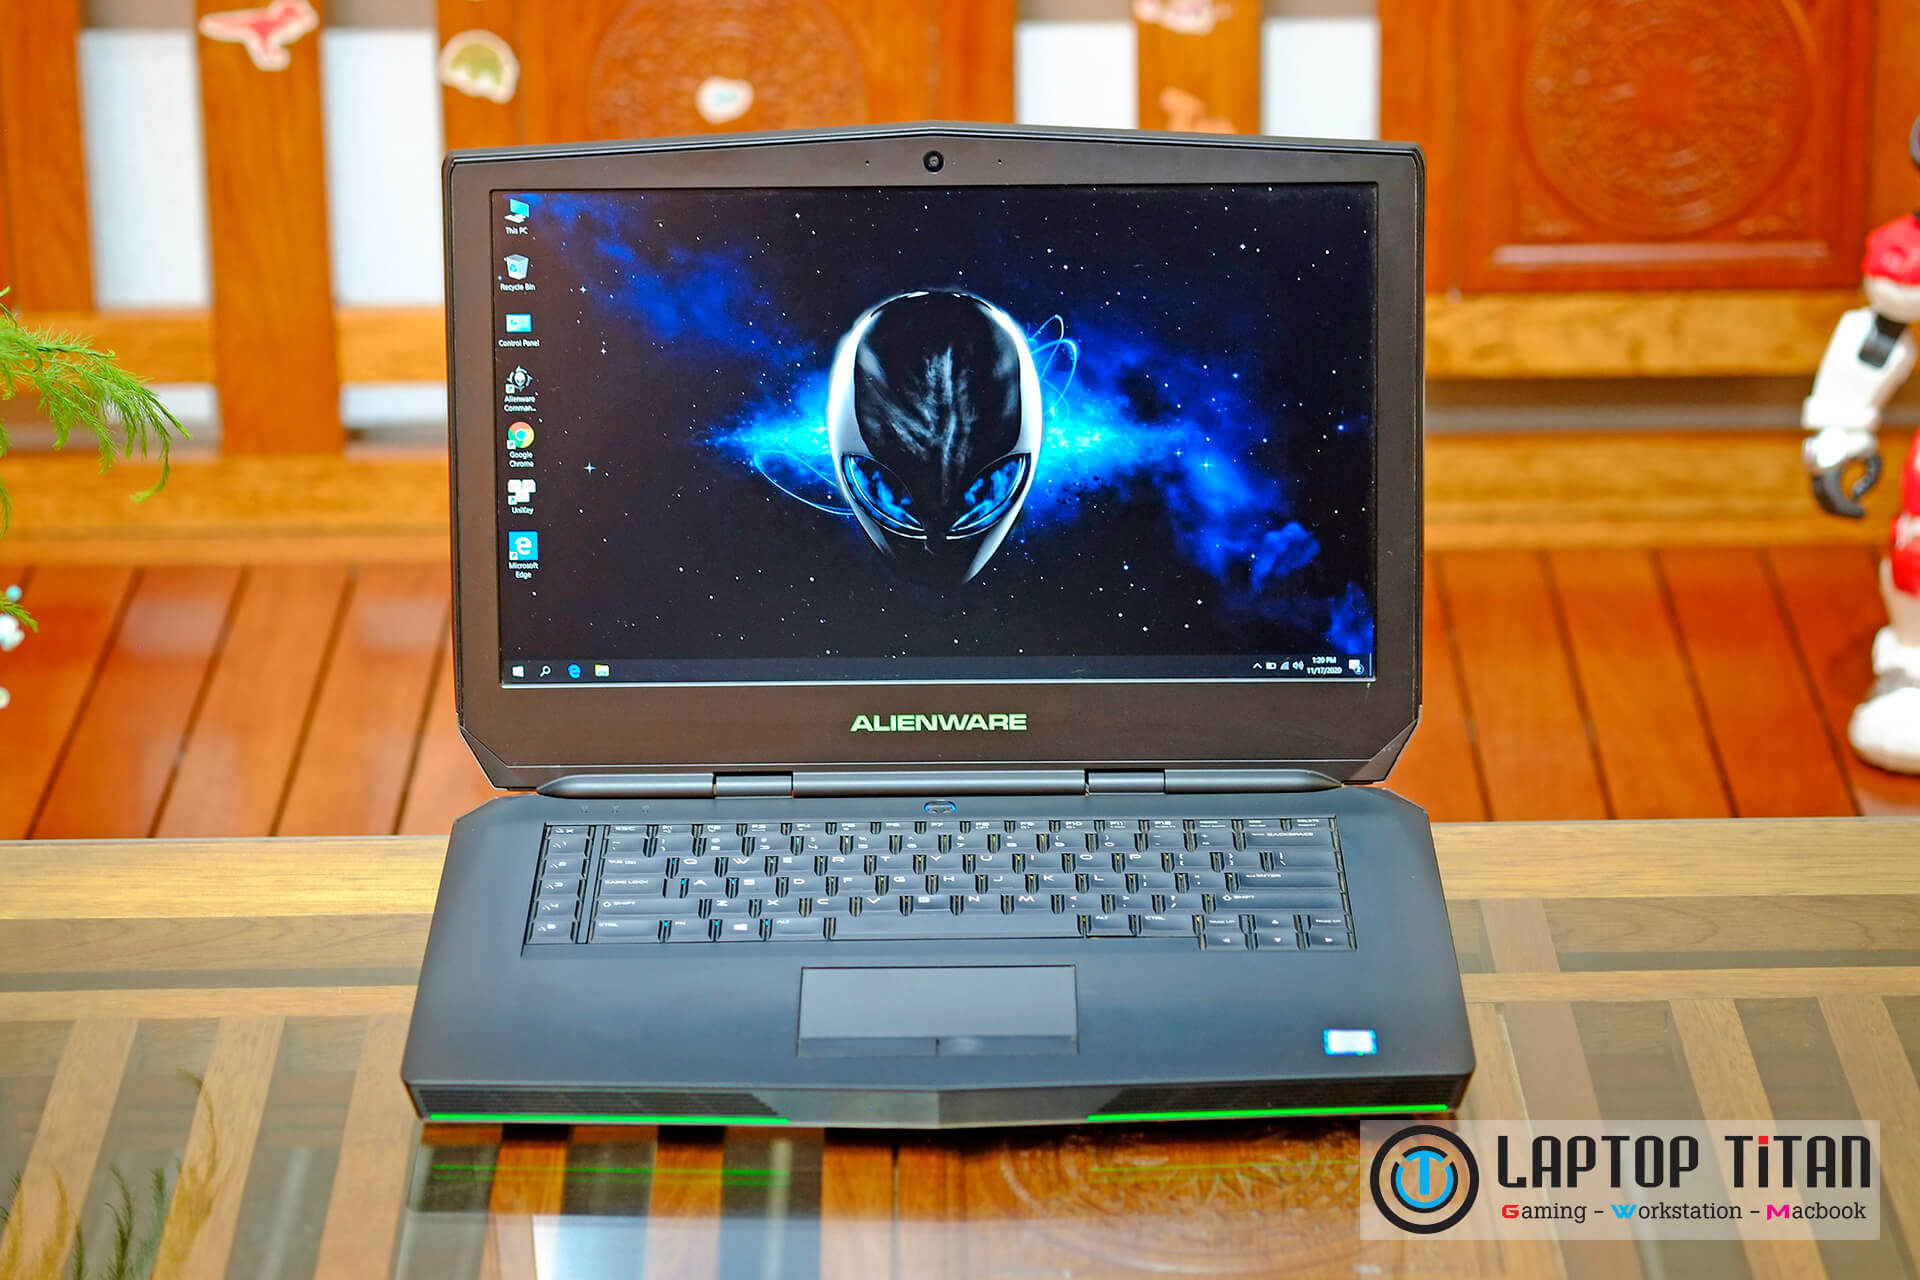 Dell Alienware 15 R2 Core i5 6300HQ / 8GB / 128GB + 1TB / GTX 965M / 15-inch FHD